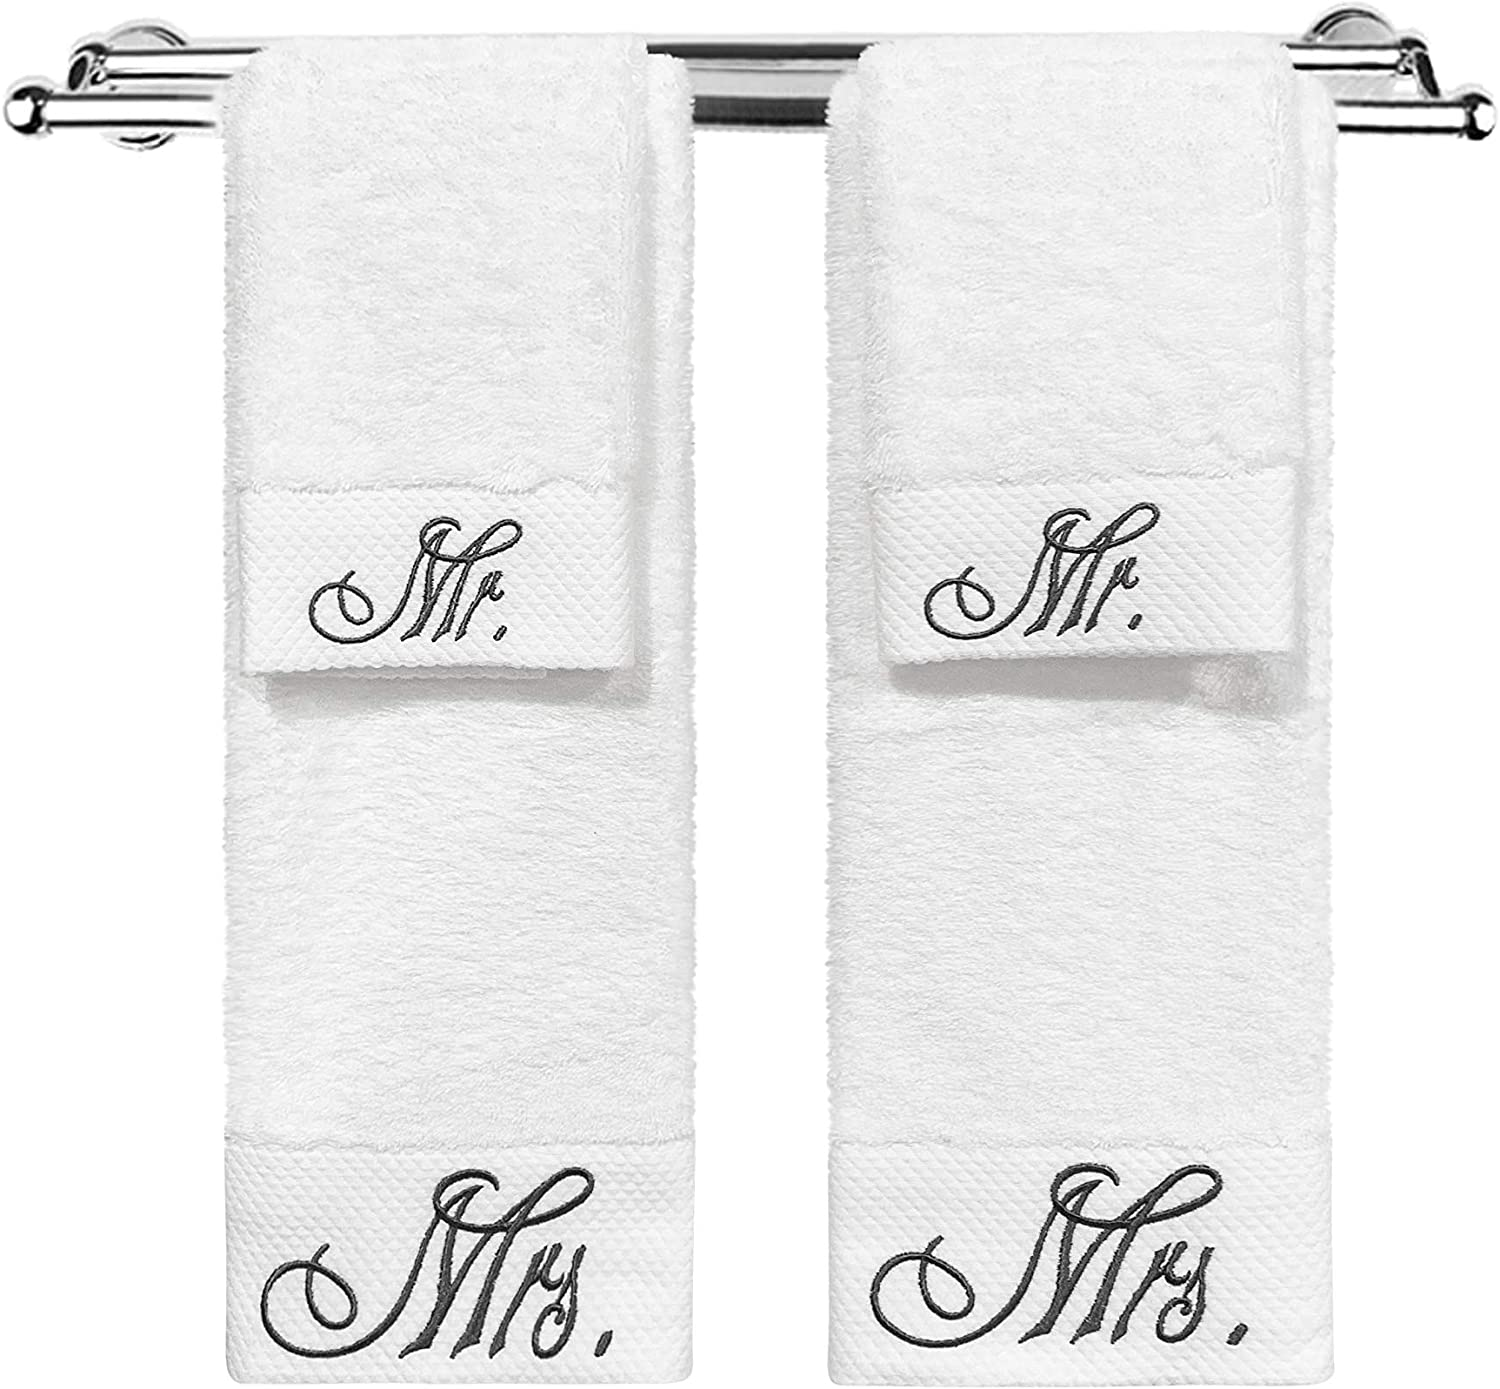 Modern Designs Pro Mr. and Mrs. Gifts - Couple Embroidered Towels - Wedding/Engagement Gifts (4 Pack - Mr. & Mrs.)